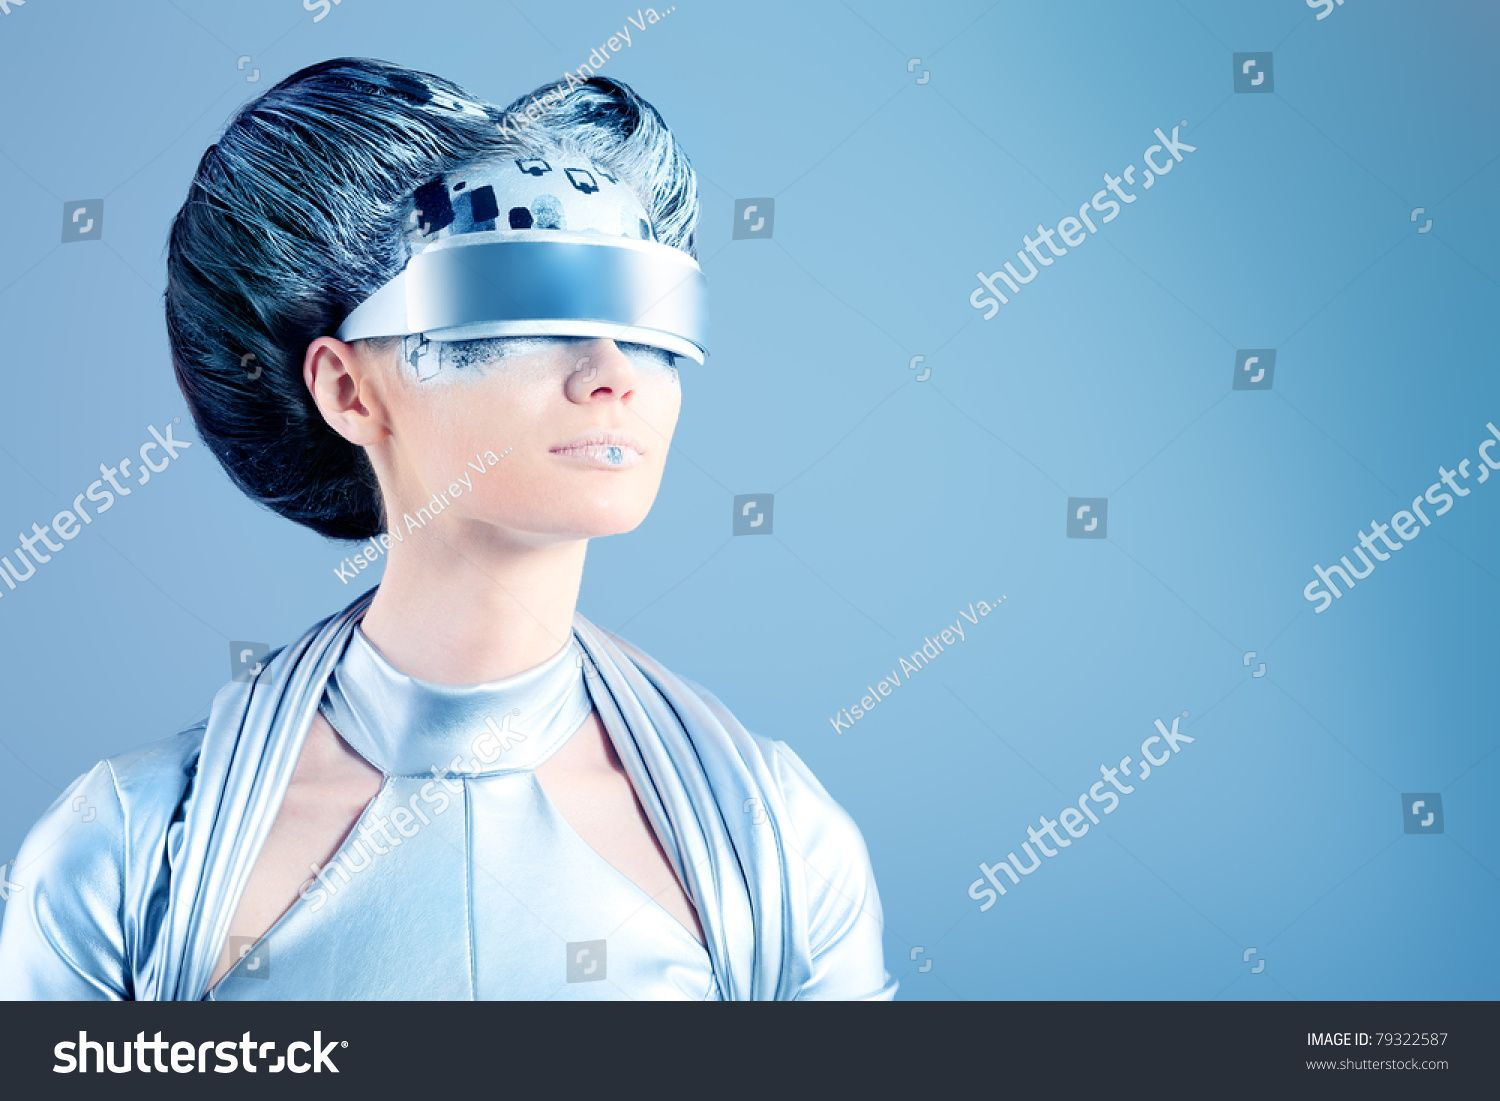 Shot of a futuristic young woman wearing glasses. #Sponsored , #Affiliate, #young#futuristic#Shot#glasses